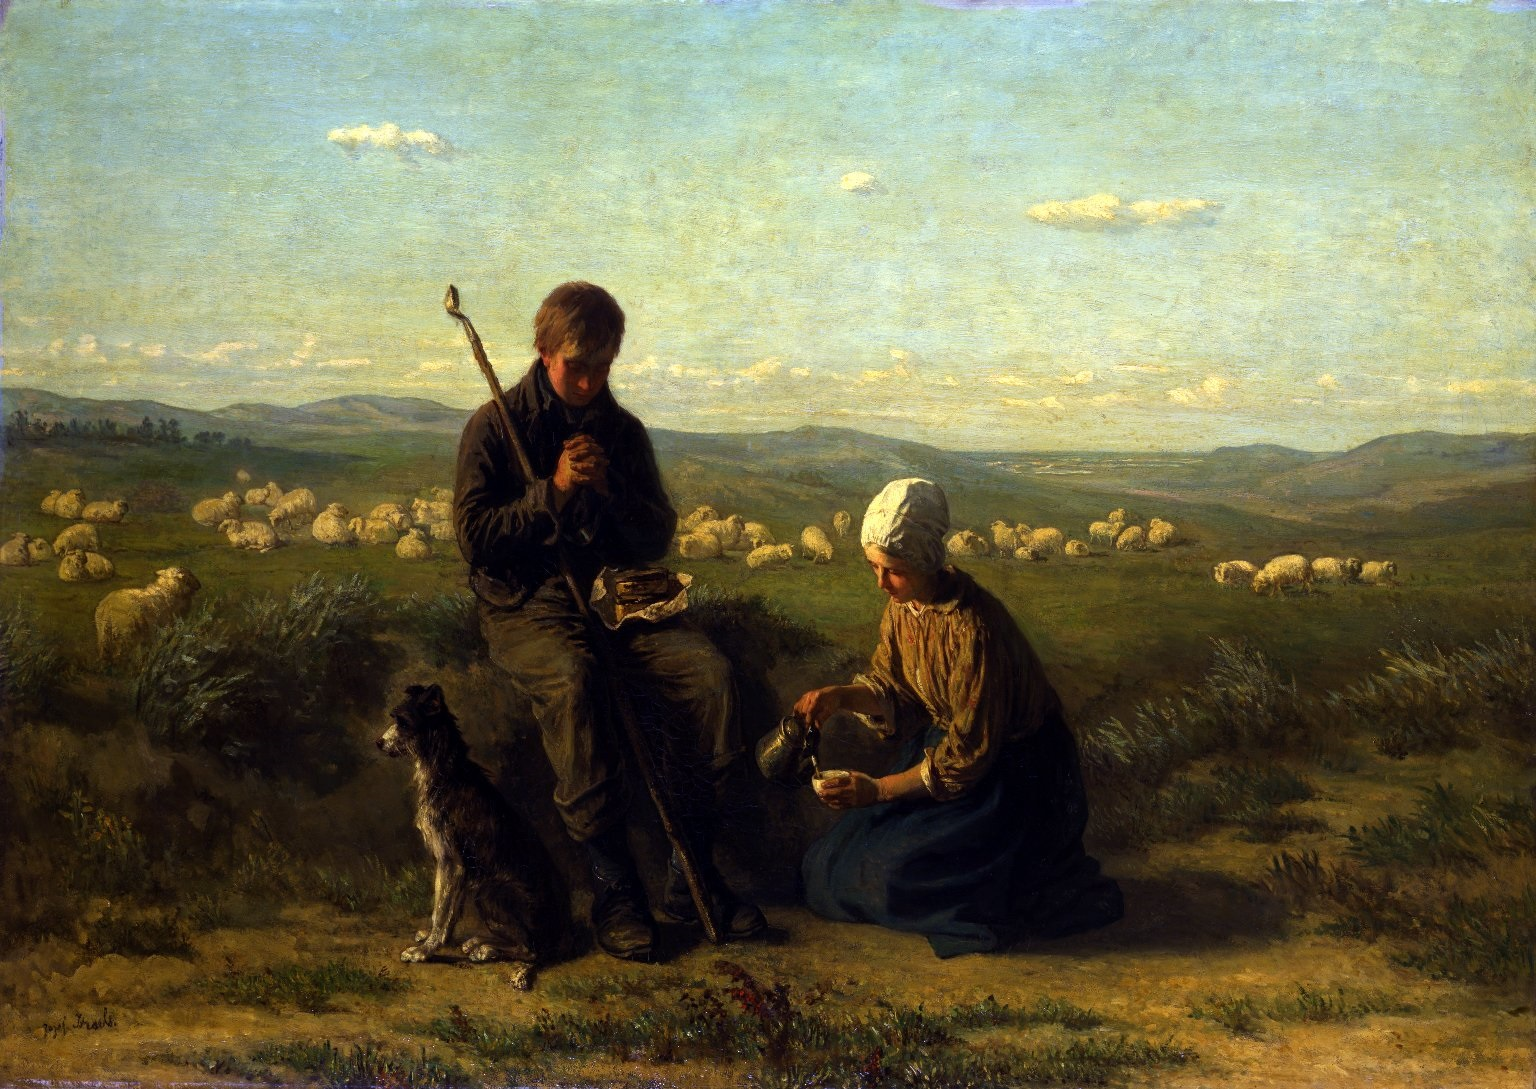 Jozef Israels The Shepherds Prayer